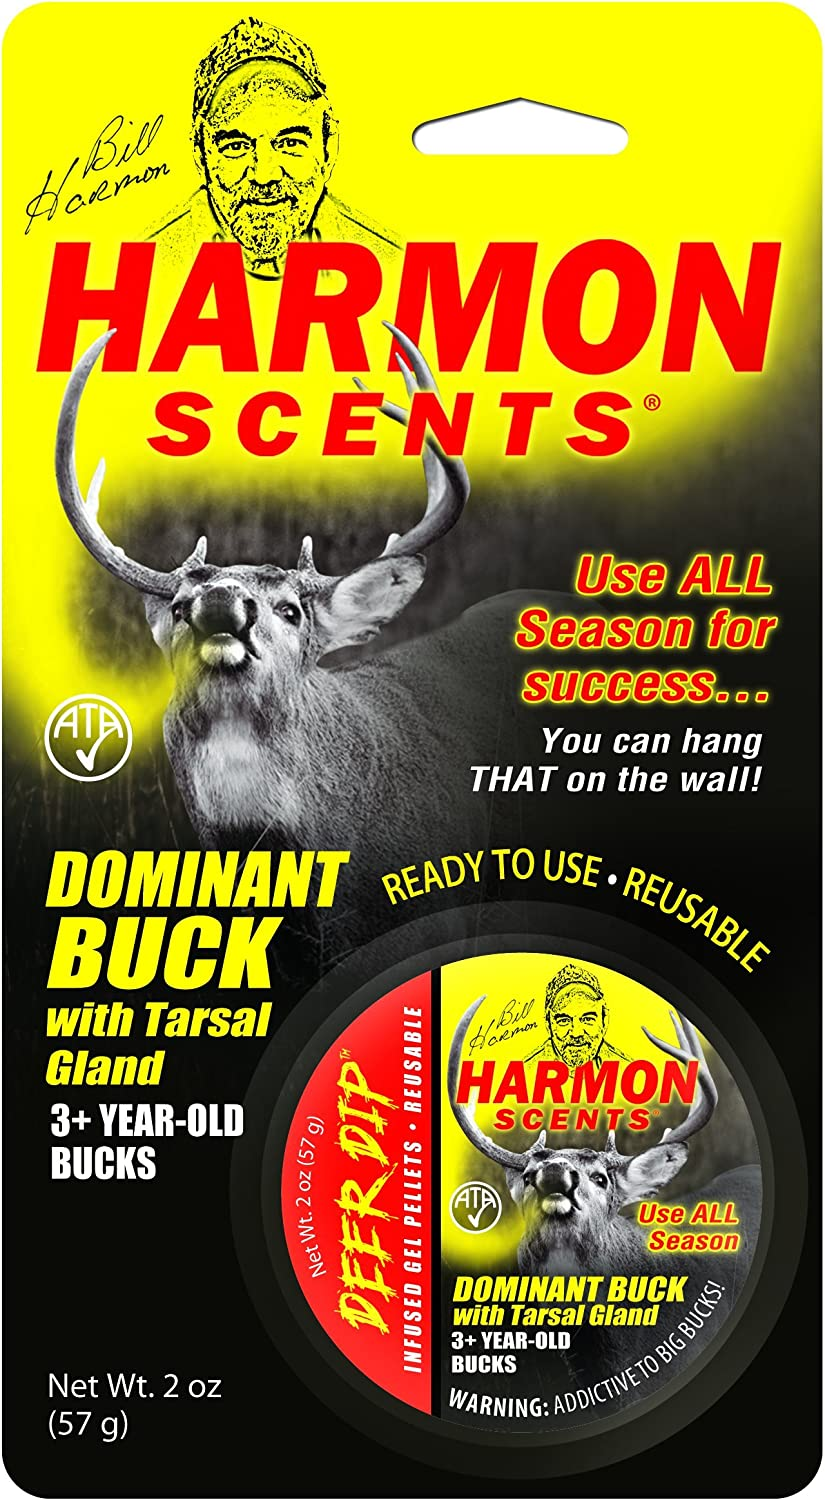 Harmon Scents - Dominant Buck Deer Dip- CCHDBDD - Whitetail Attractant - Deer Lure Deer Hunting - Trophy Buck - Whitetail Urine